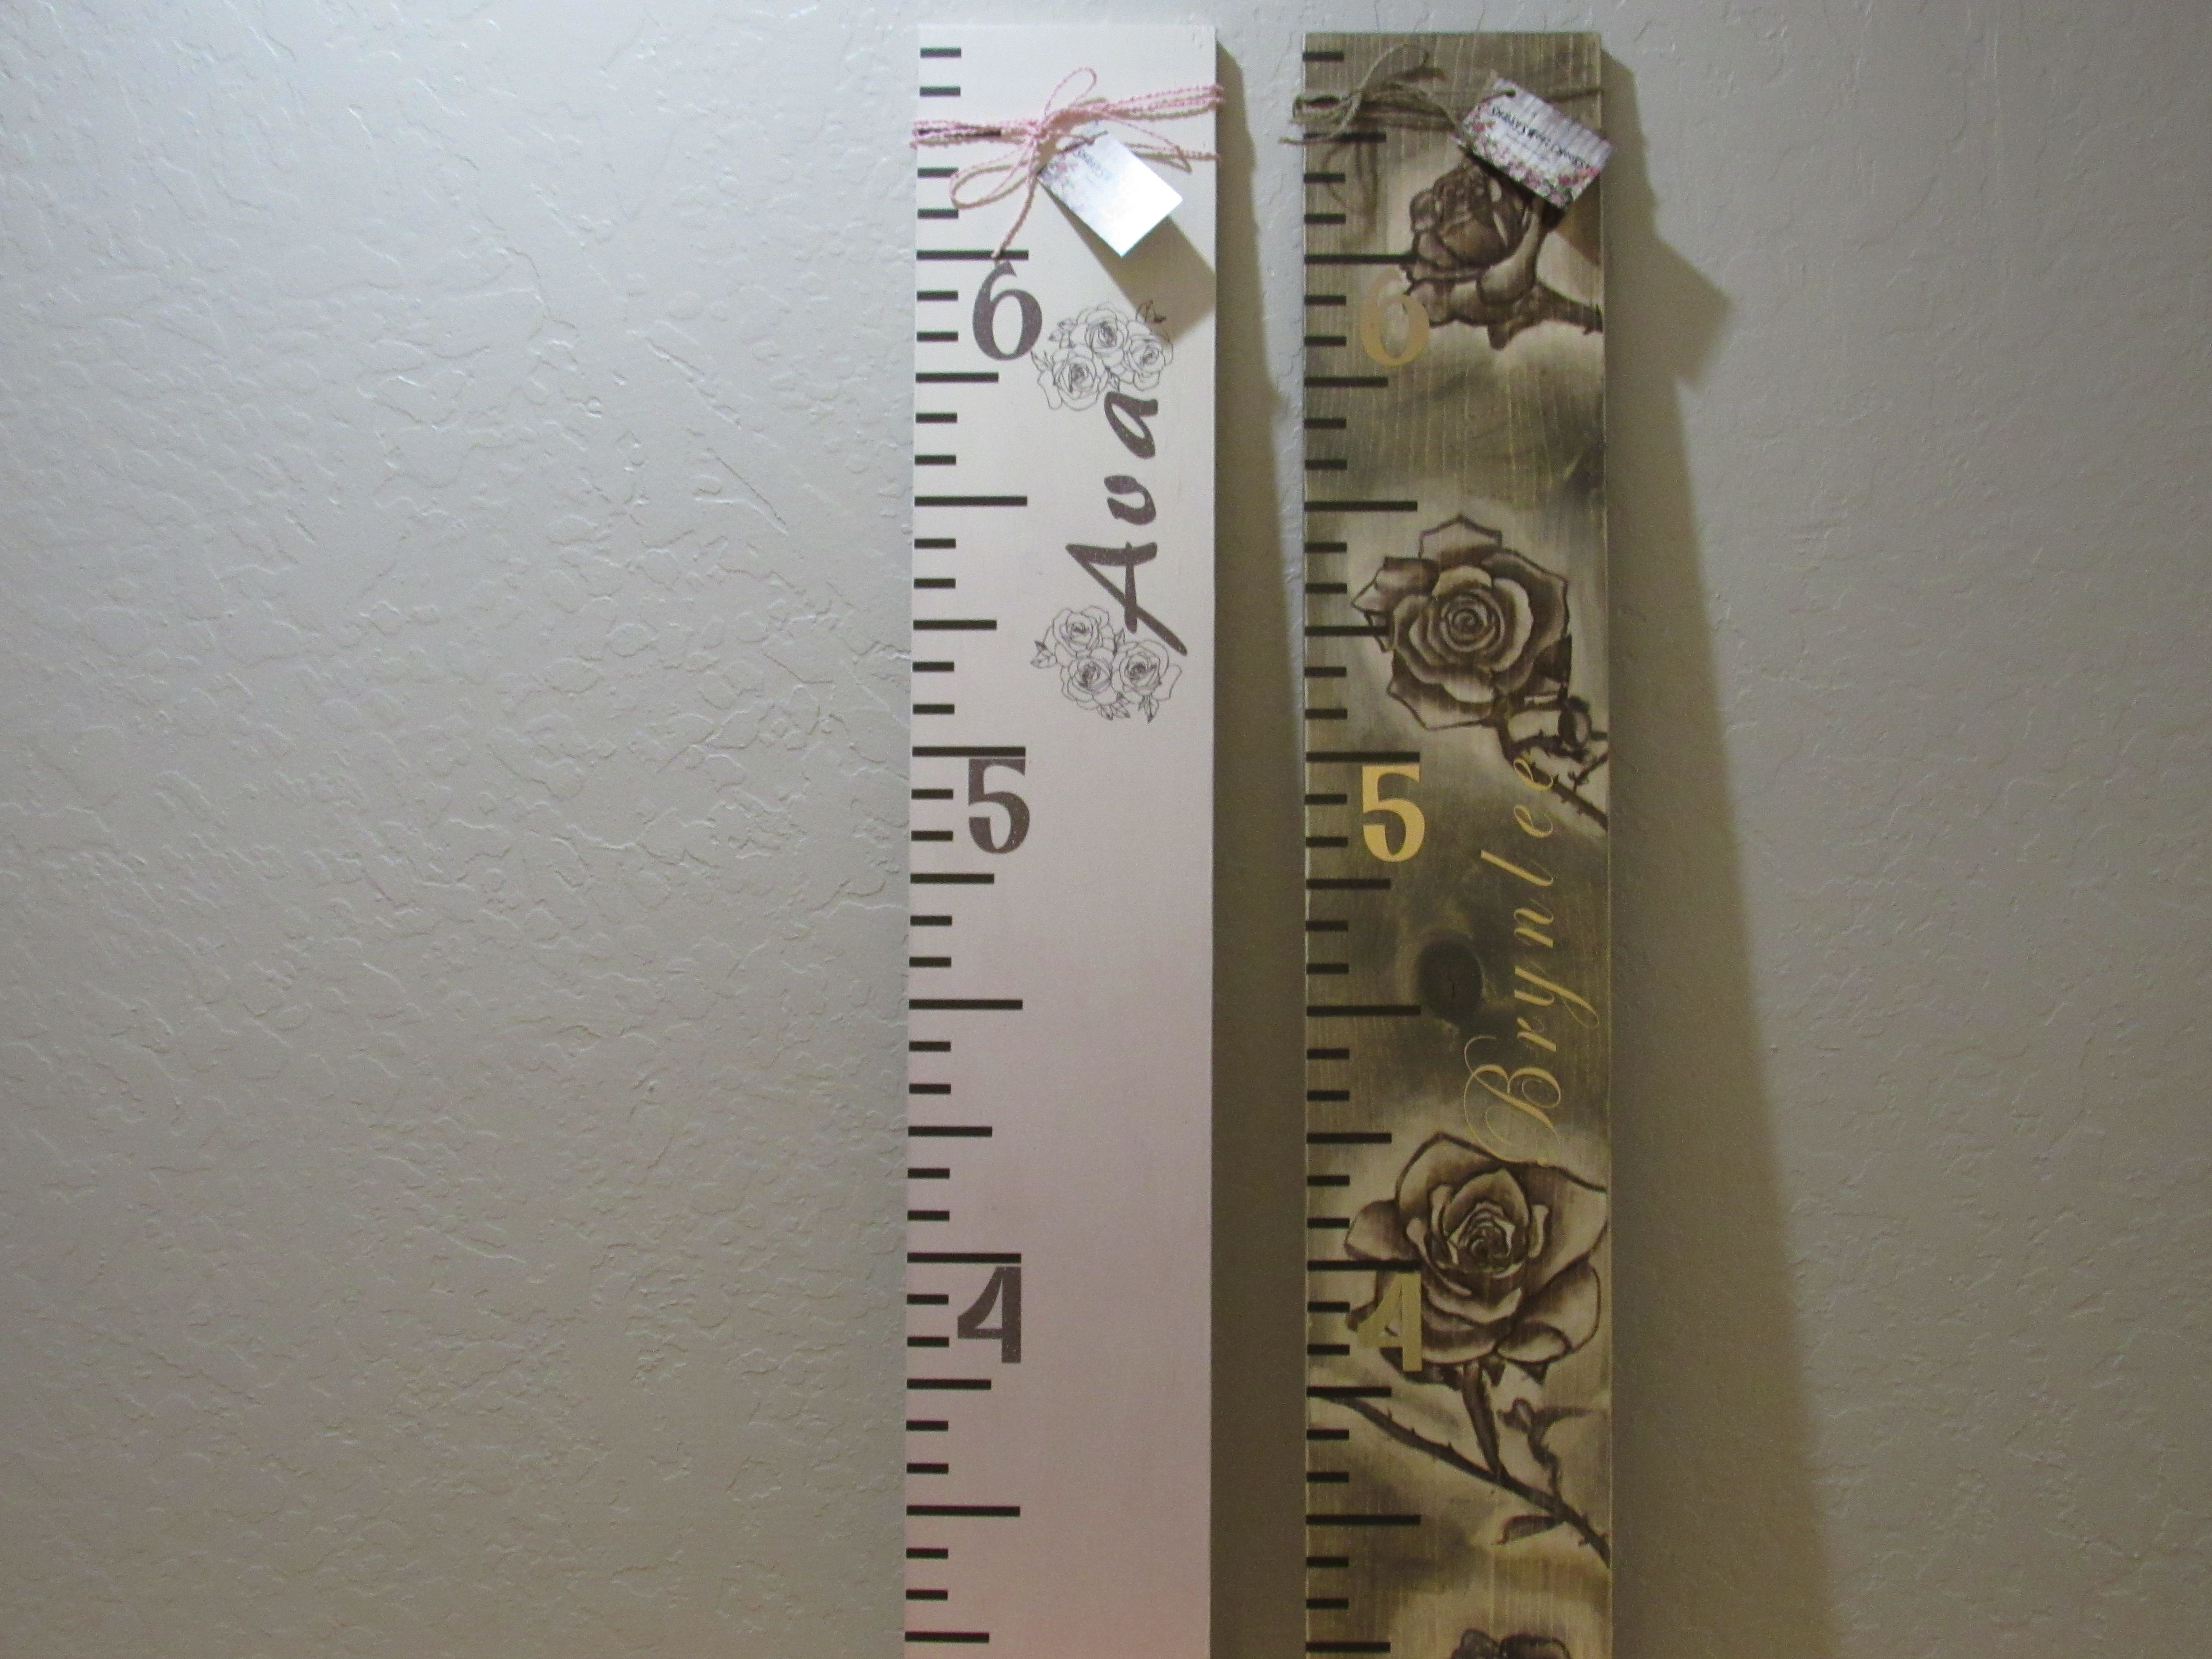 Shabby sweet cheeks growth chart height chart large ruler shabby sweet cheeks growth chart height chart large ruler giant ruler personalized height chart wooden sign diy roses rustic sign pink sign baby nvjuhfo Choice Image